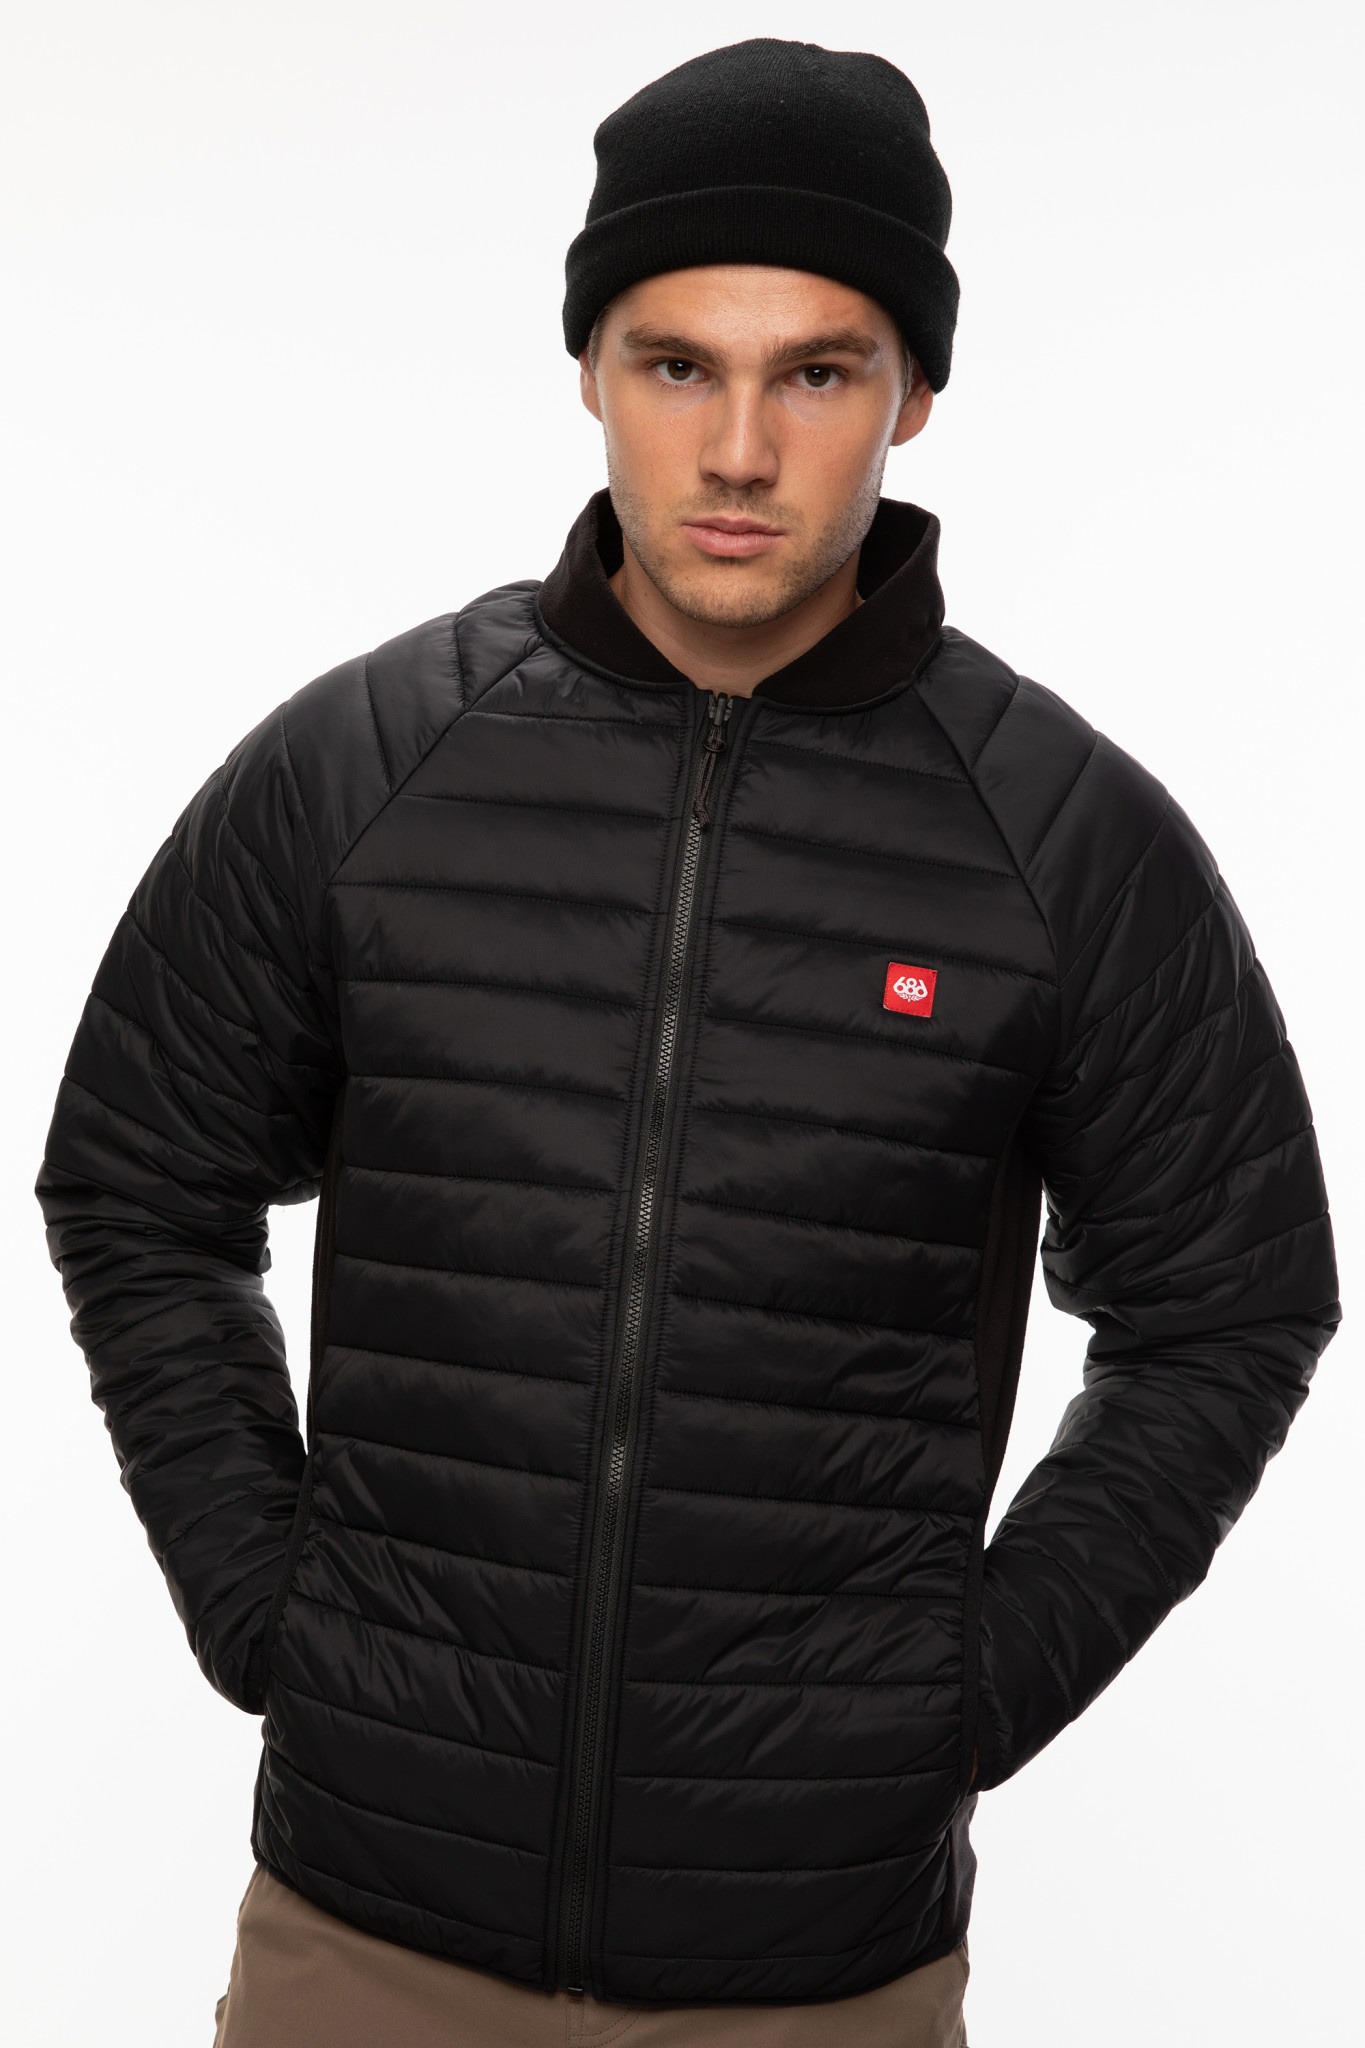 686 686 M's Thermal Puff Jacket